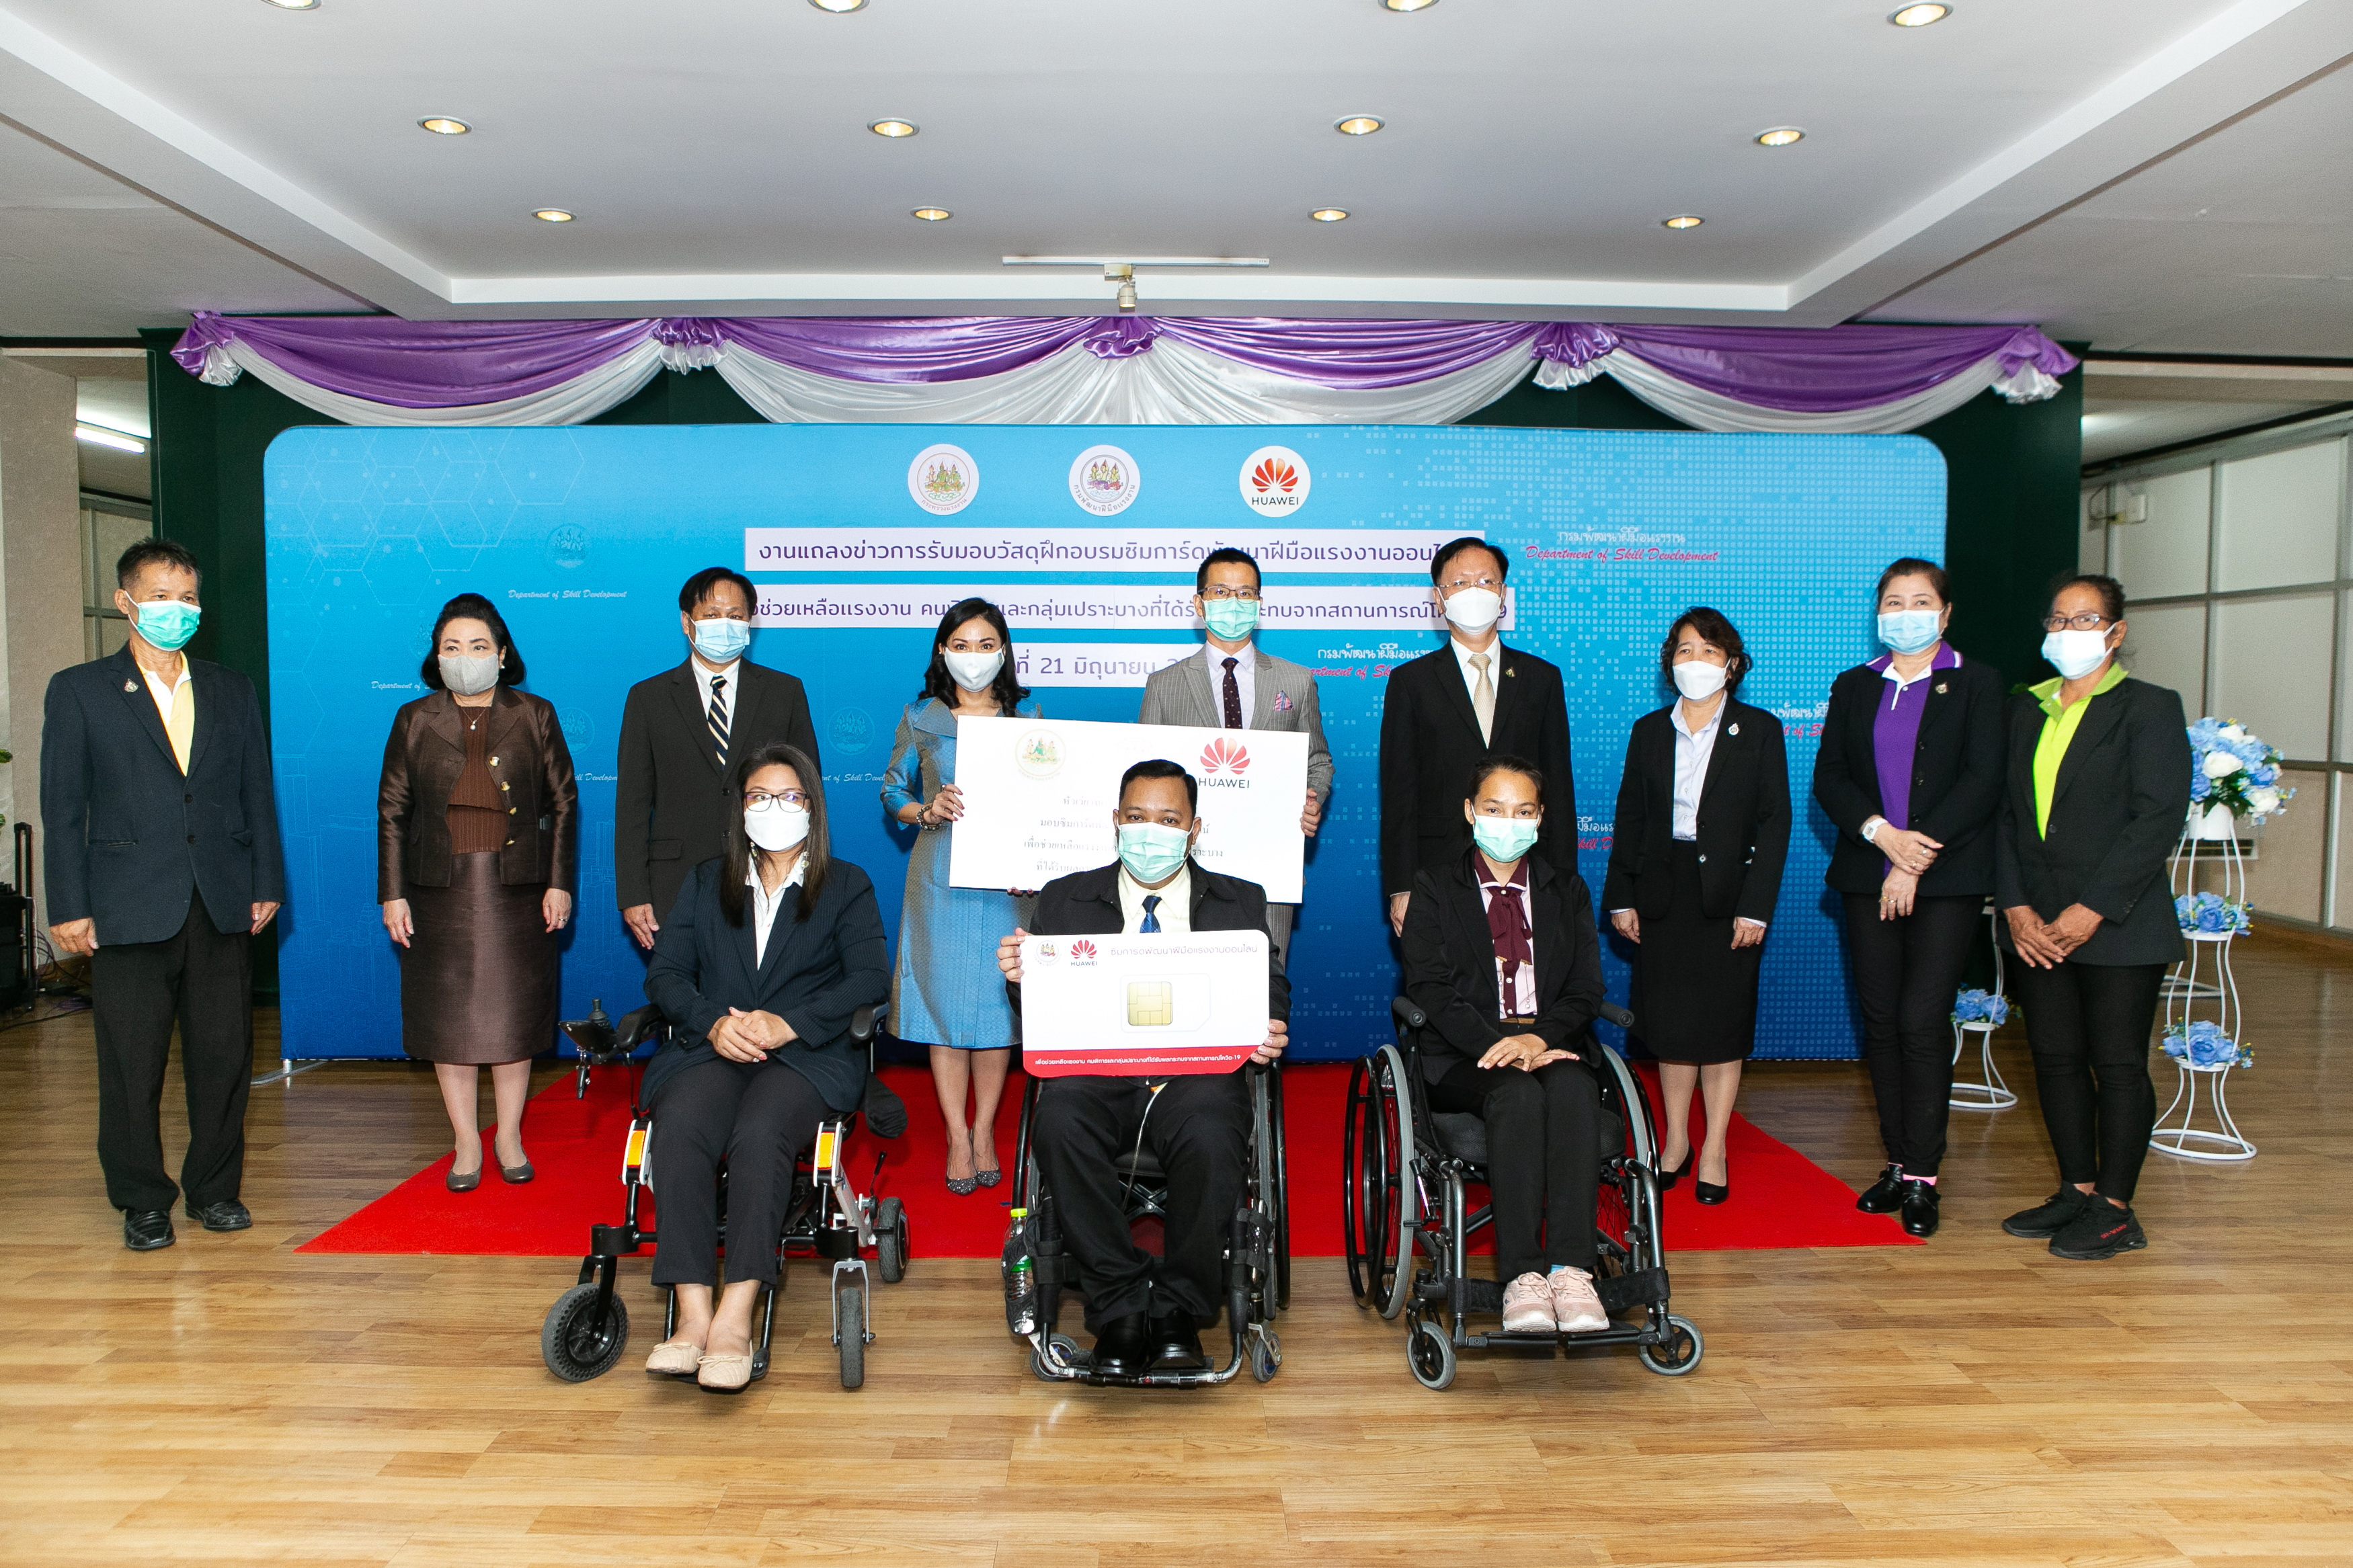 Huawei Donates Labour SIM Cards to Help Empower Persons with Disabilities and the Most Vulnerable During Pandemic